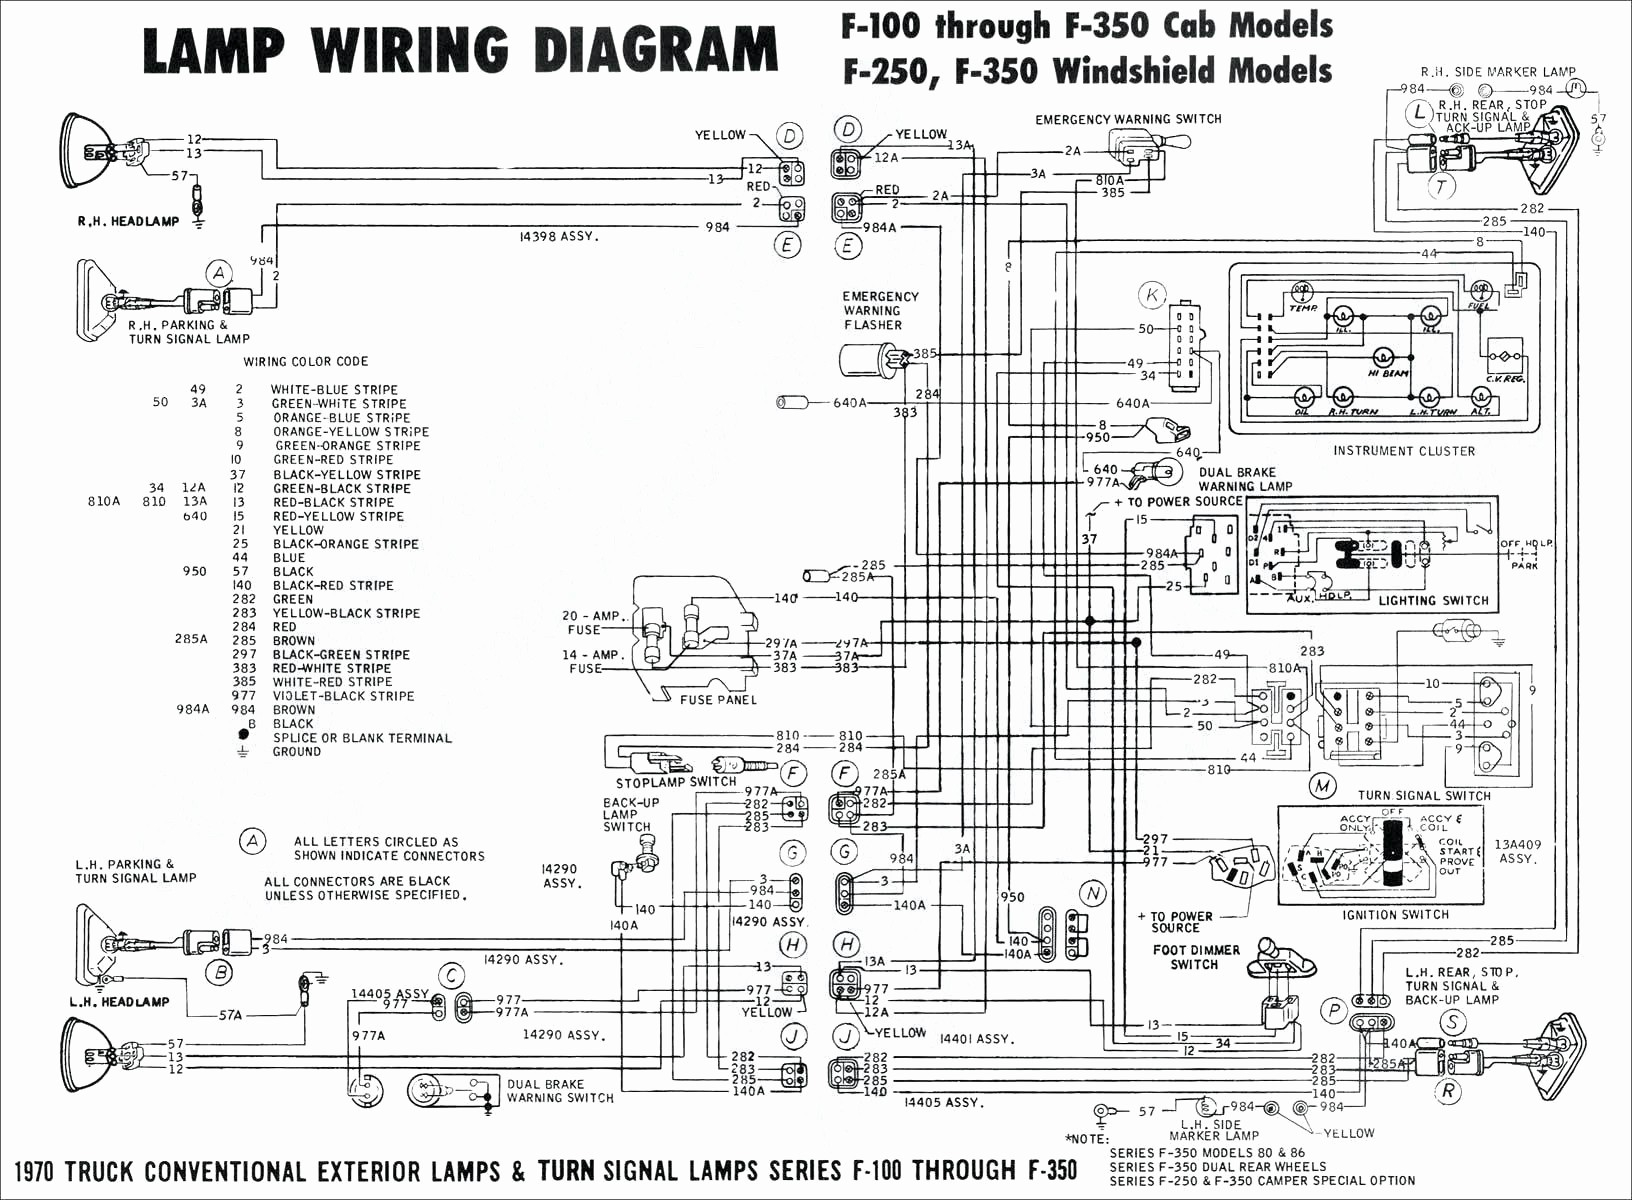 2007 dodge ram 1500 brake light wiring diagram collection wiring 2007 dodge ram 1500 brake light wiring diagram collection brake light wiring diagram chevy manual cheapraybanclubmaster Gallery